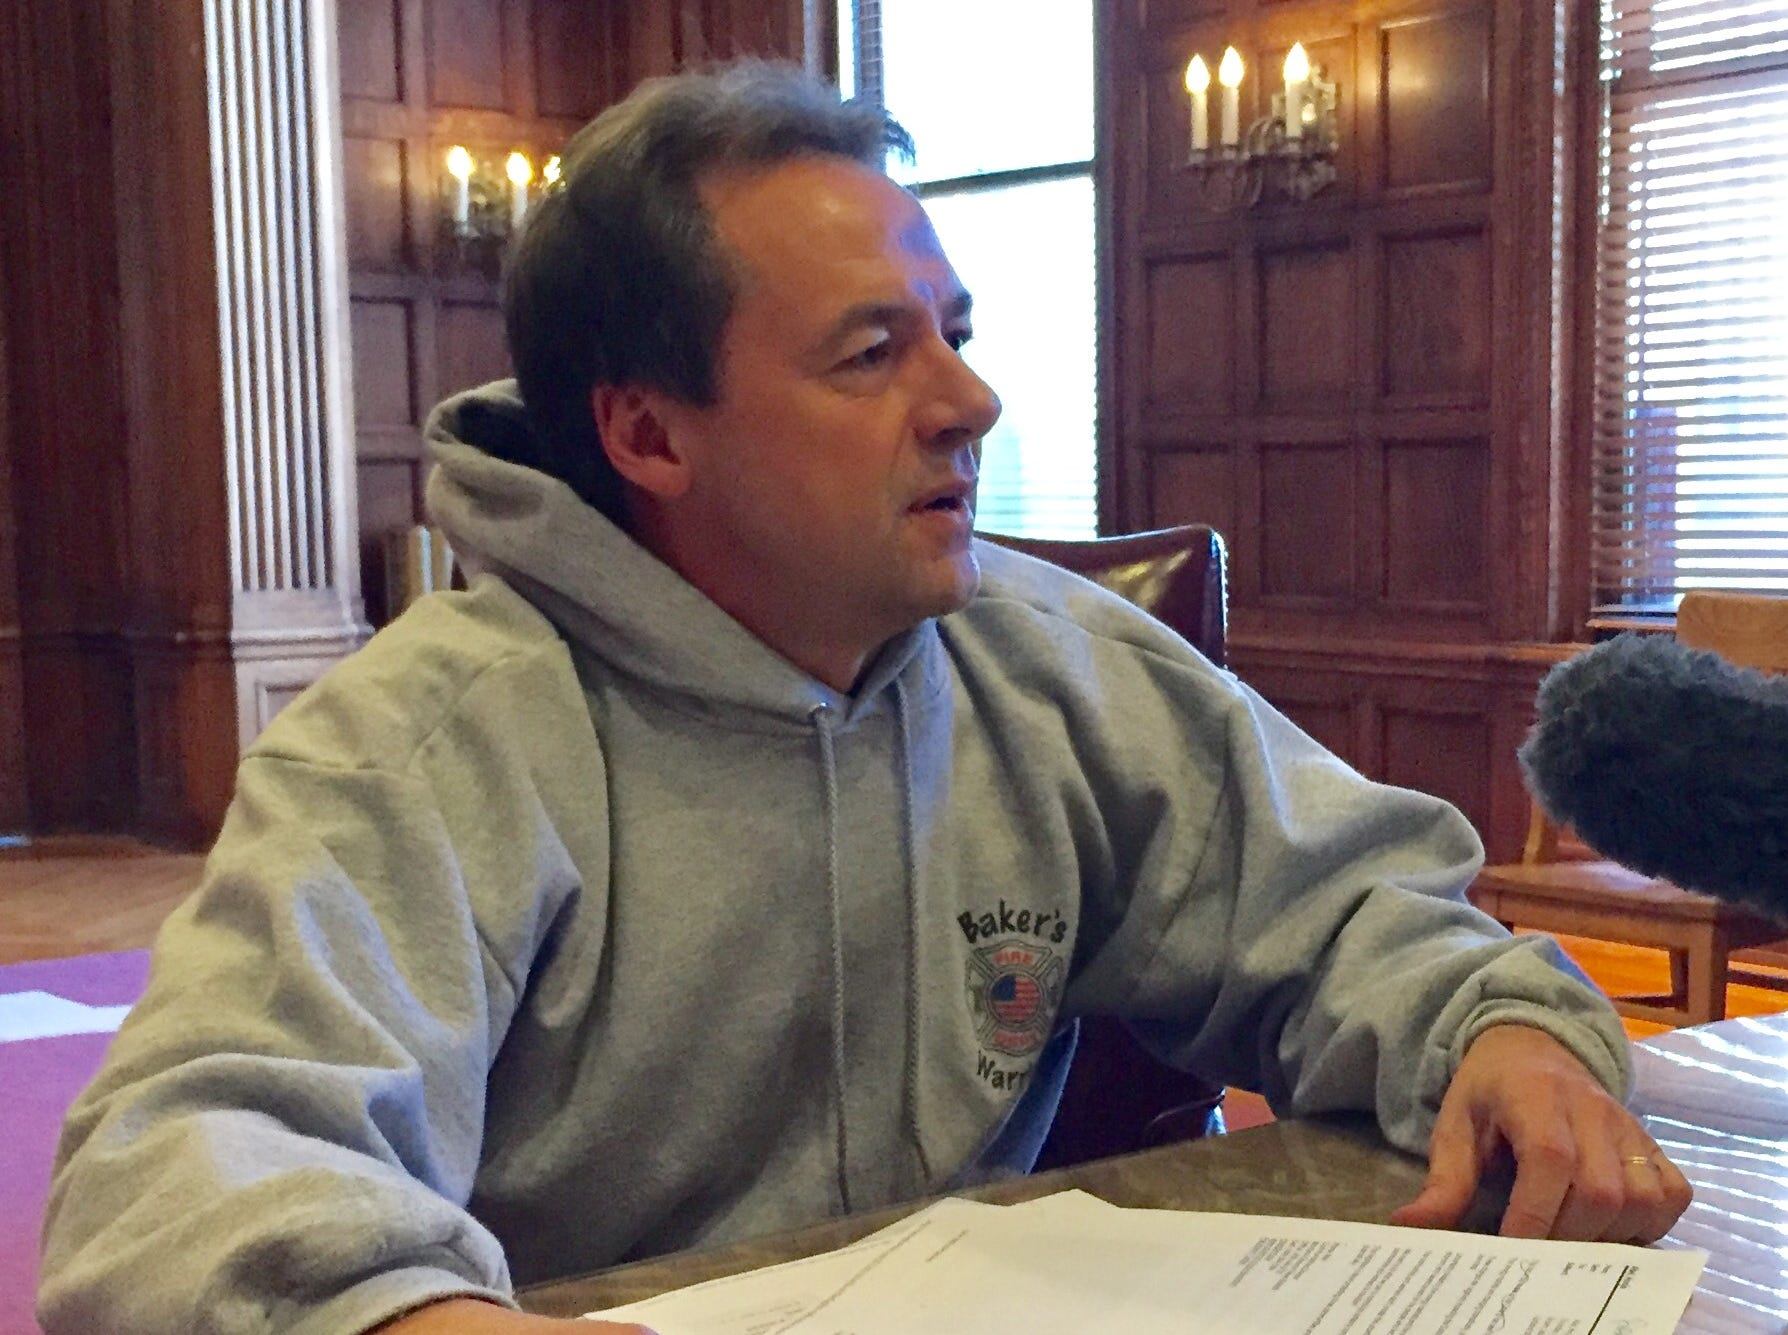 Gov. Steve Bullock wears a Bakers Warriors hoodie Thursday to a news conference.